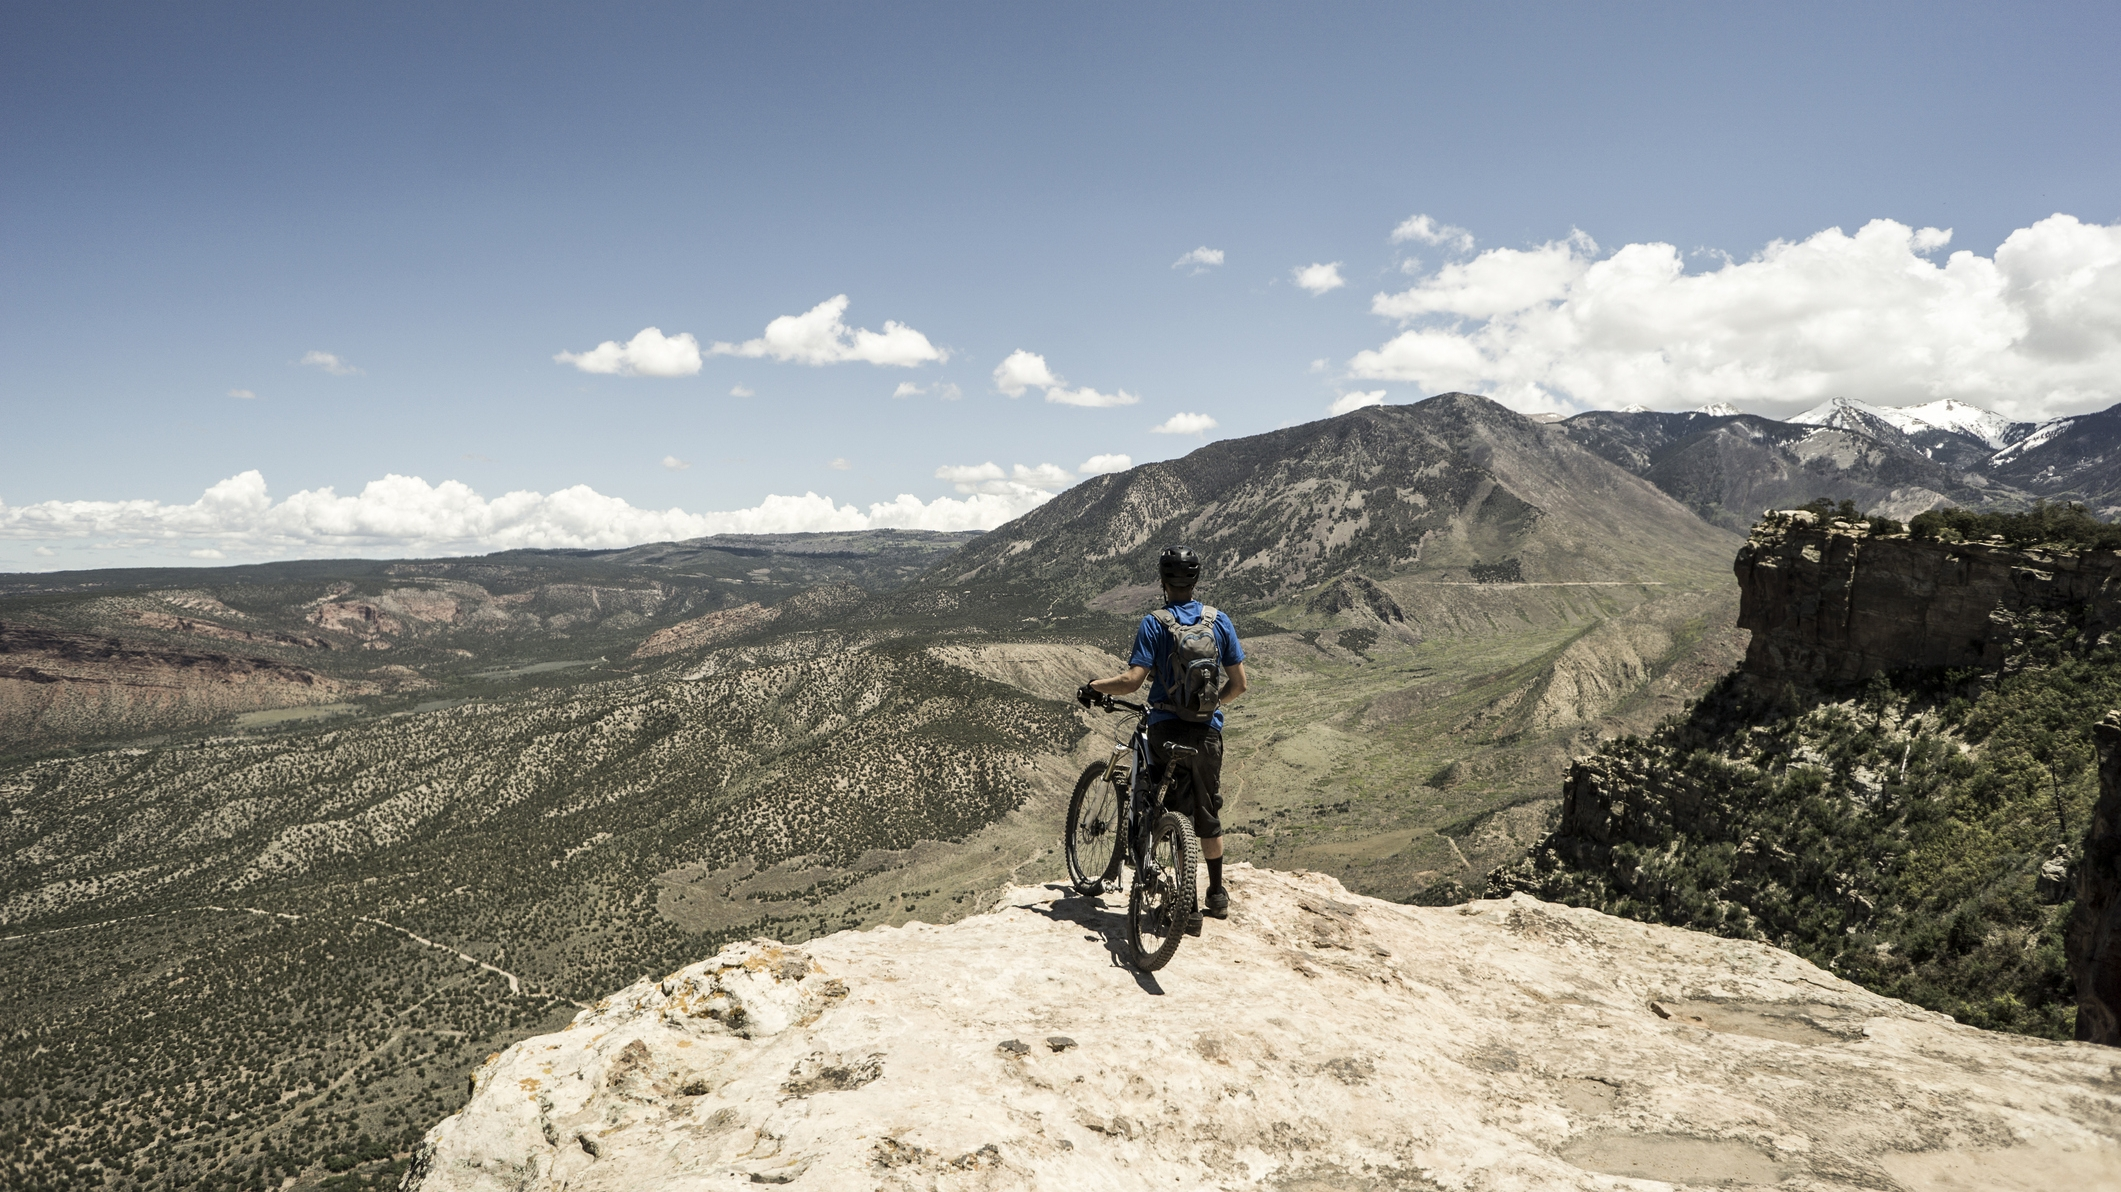 mountain bike in wilderness